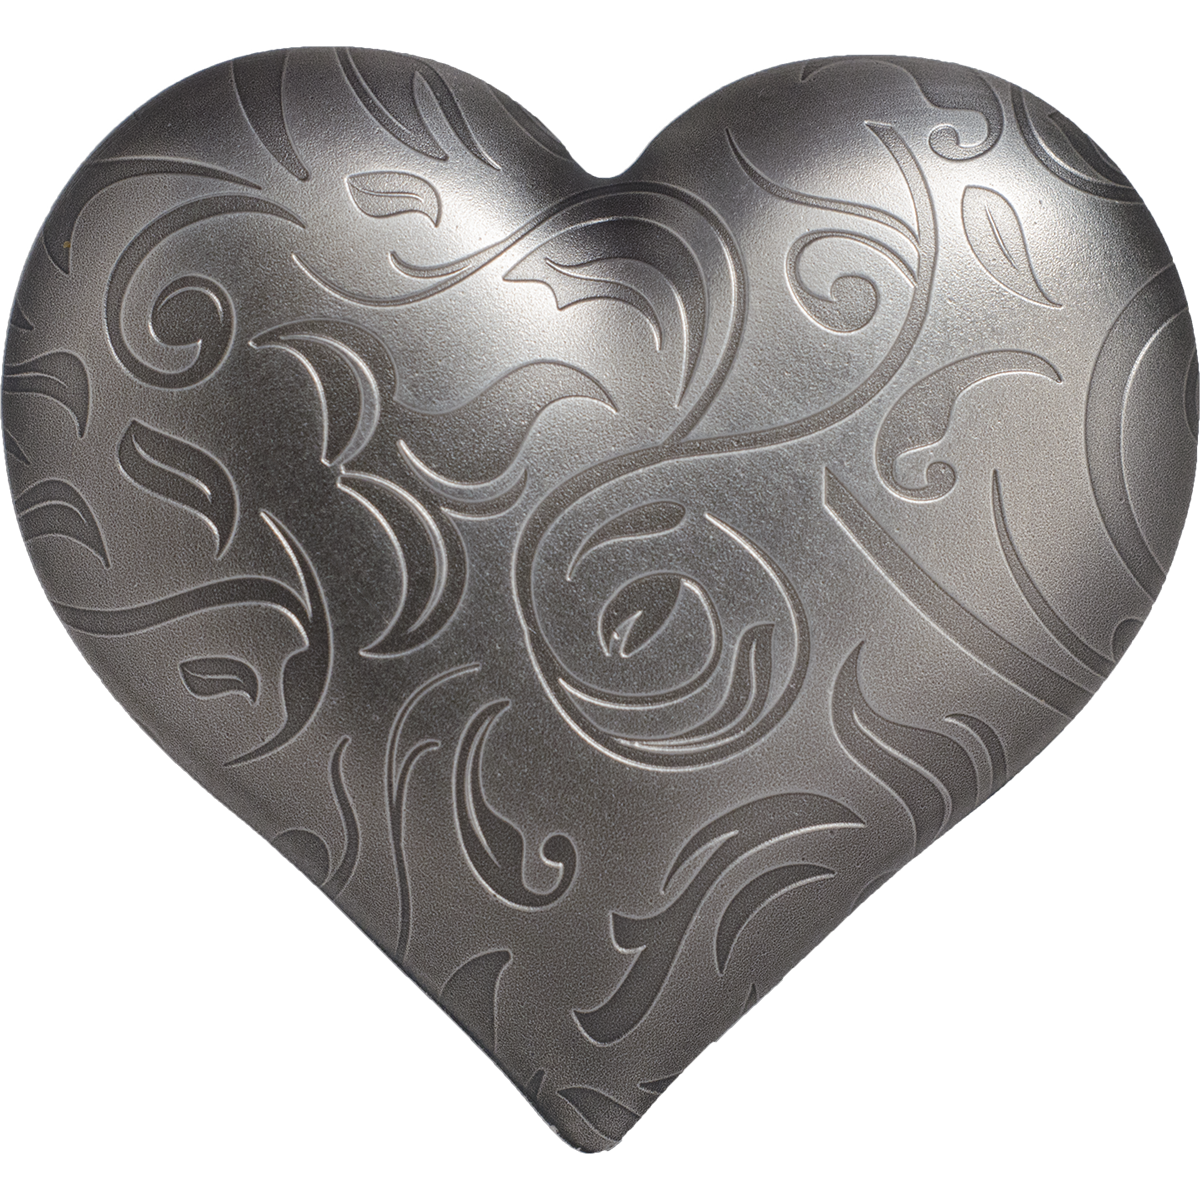 silver heart one ounce shape coin with smartminting by CIT Coin Invest AG and B H Mayer mint